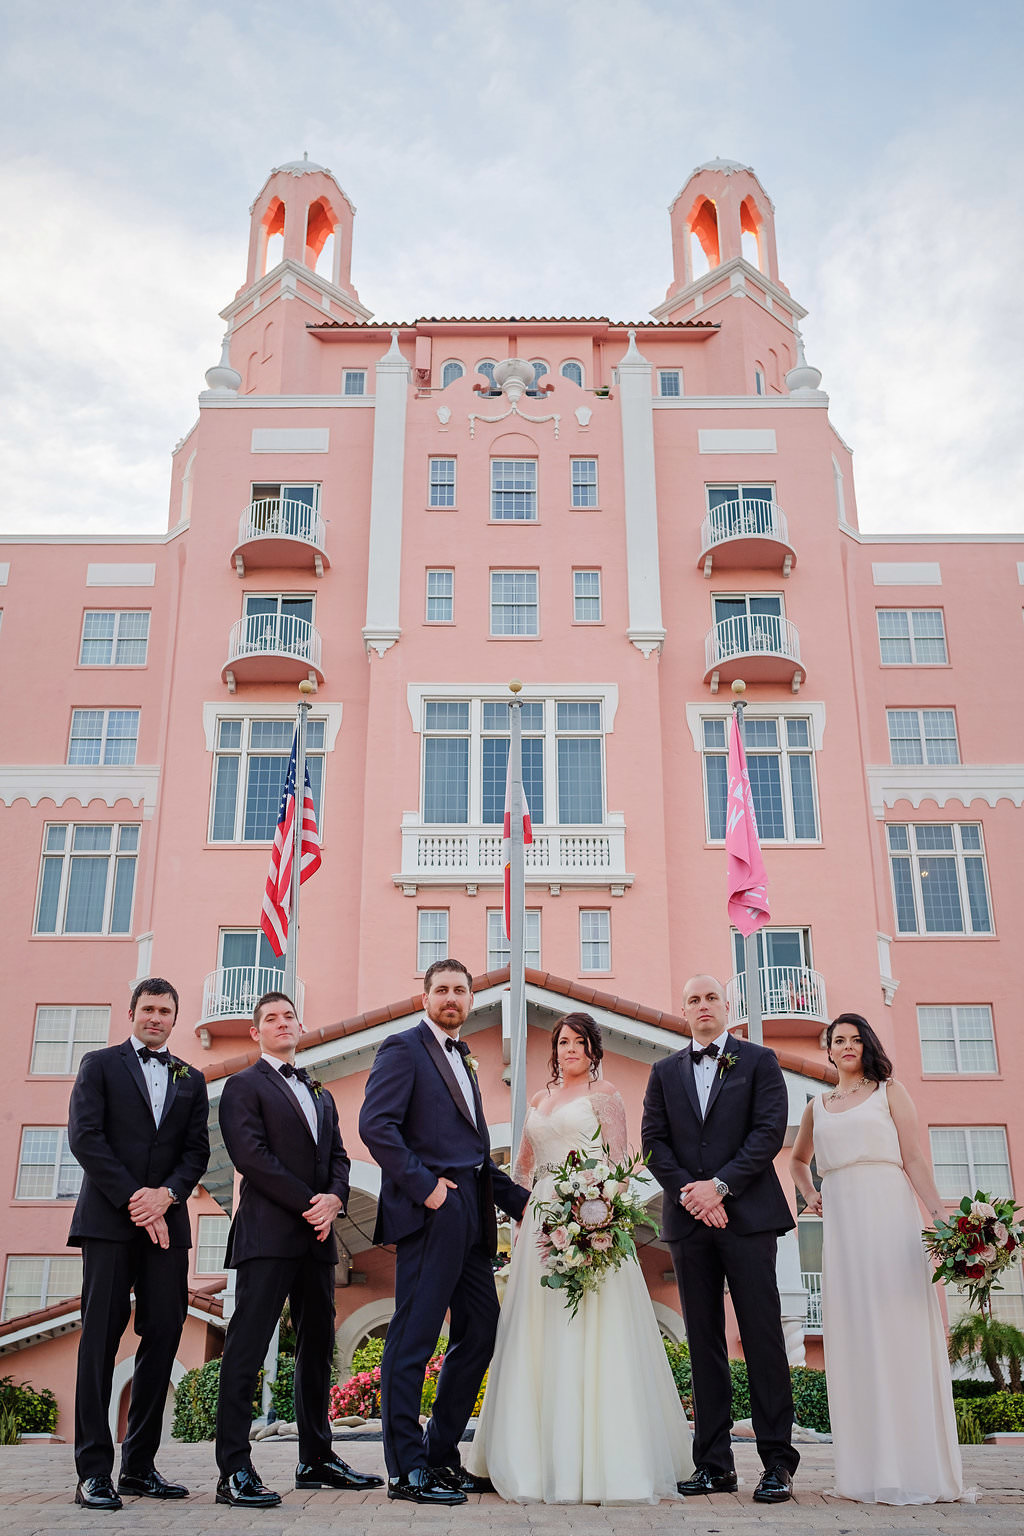 Outdoor Wedding Party Portrait, Groom in Navy Suit, Groomsmen in Black, Bridesmaid in Simple White Belted Column Dress, Bride with Pink Portea, Blush and White Floral with Greenery Bouquet in front of Historic St. Pete Beach Waterfront Hotel The Don CeSar | Photographer Marc Edwards Photographs